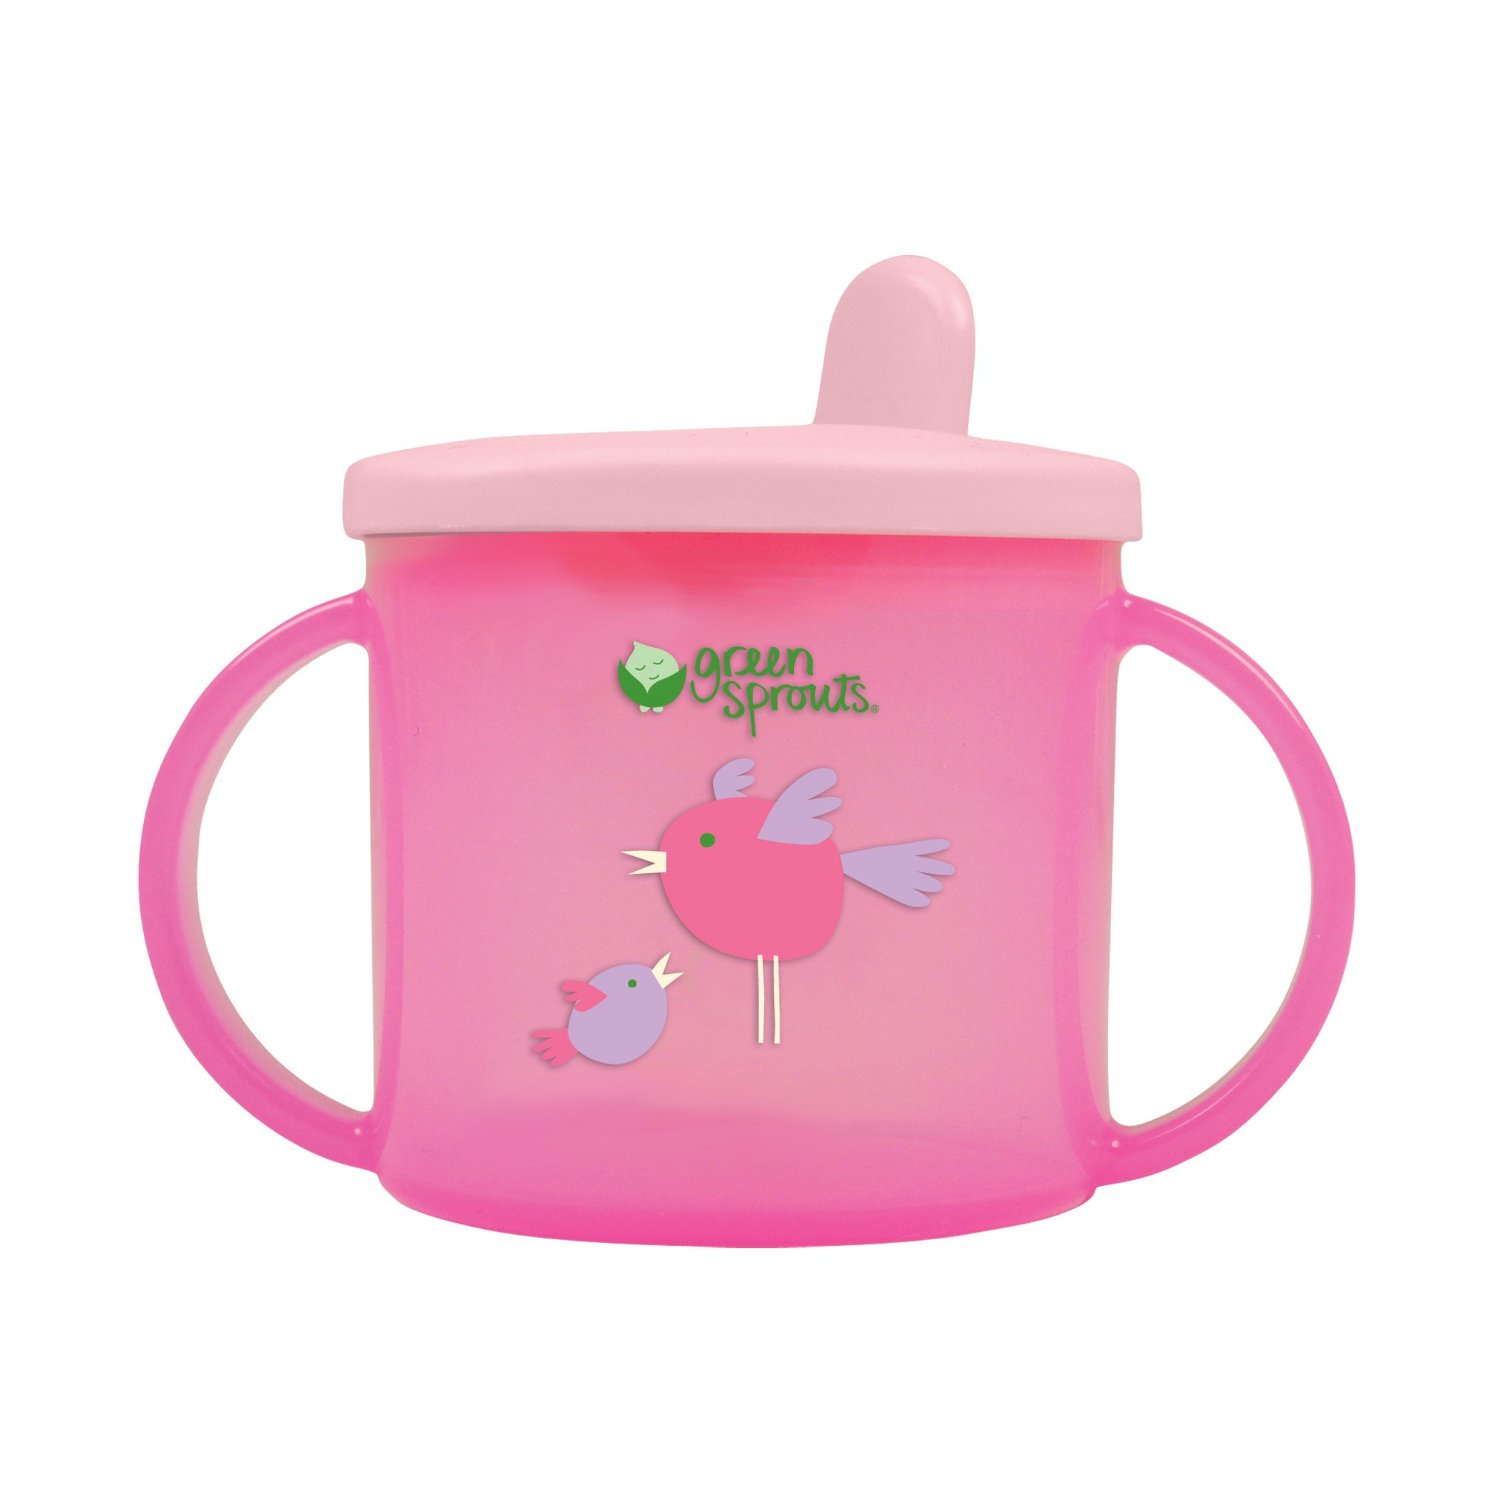 Absorbing Infants Sippy Or Sipper Cup Smoothies Sipper 14 Month Sippy Cup New Month Baby Me Sippy Cup Months Sippy Cup baby Best Sippy Cup